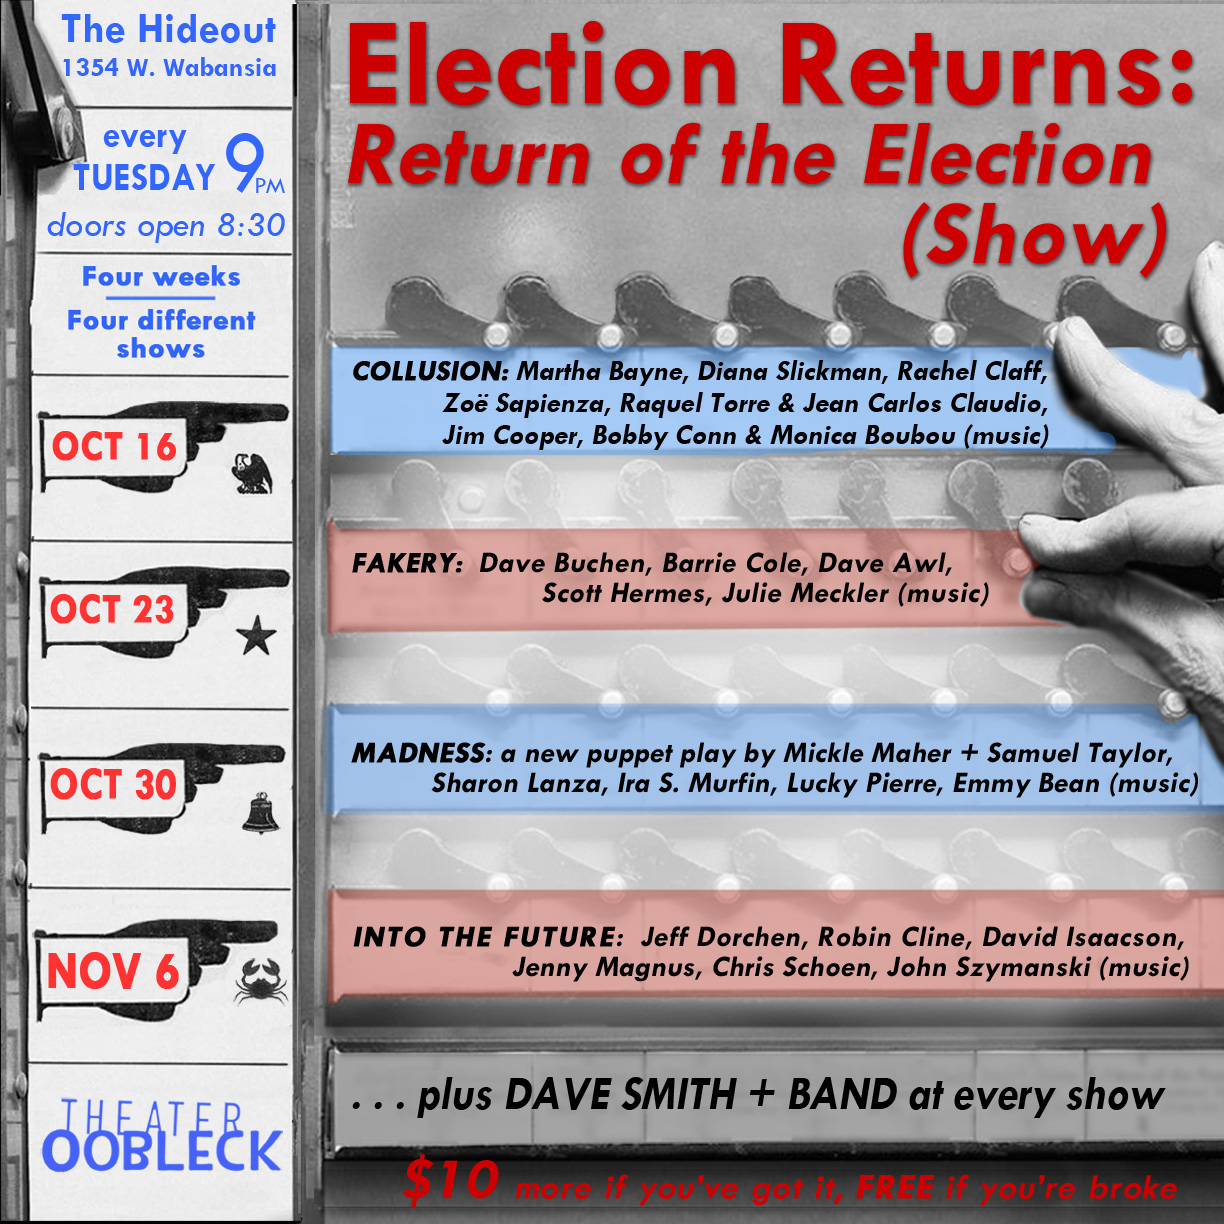 Election Returns: Return of the Election (Show)